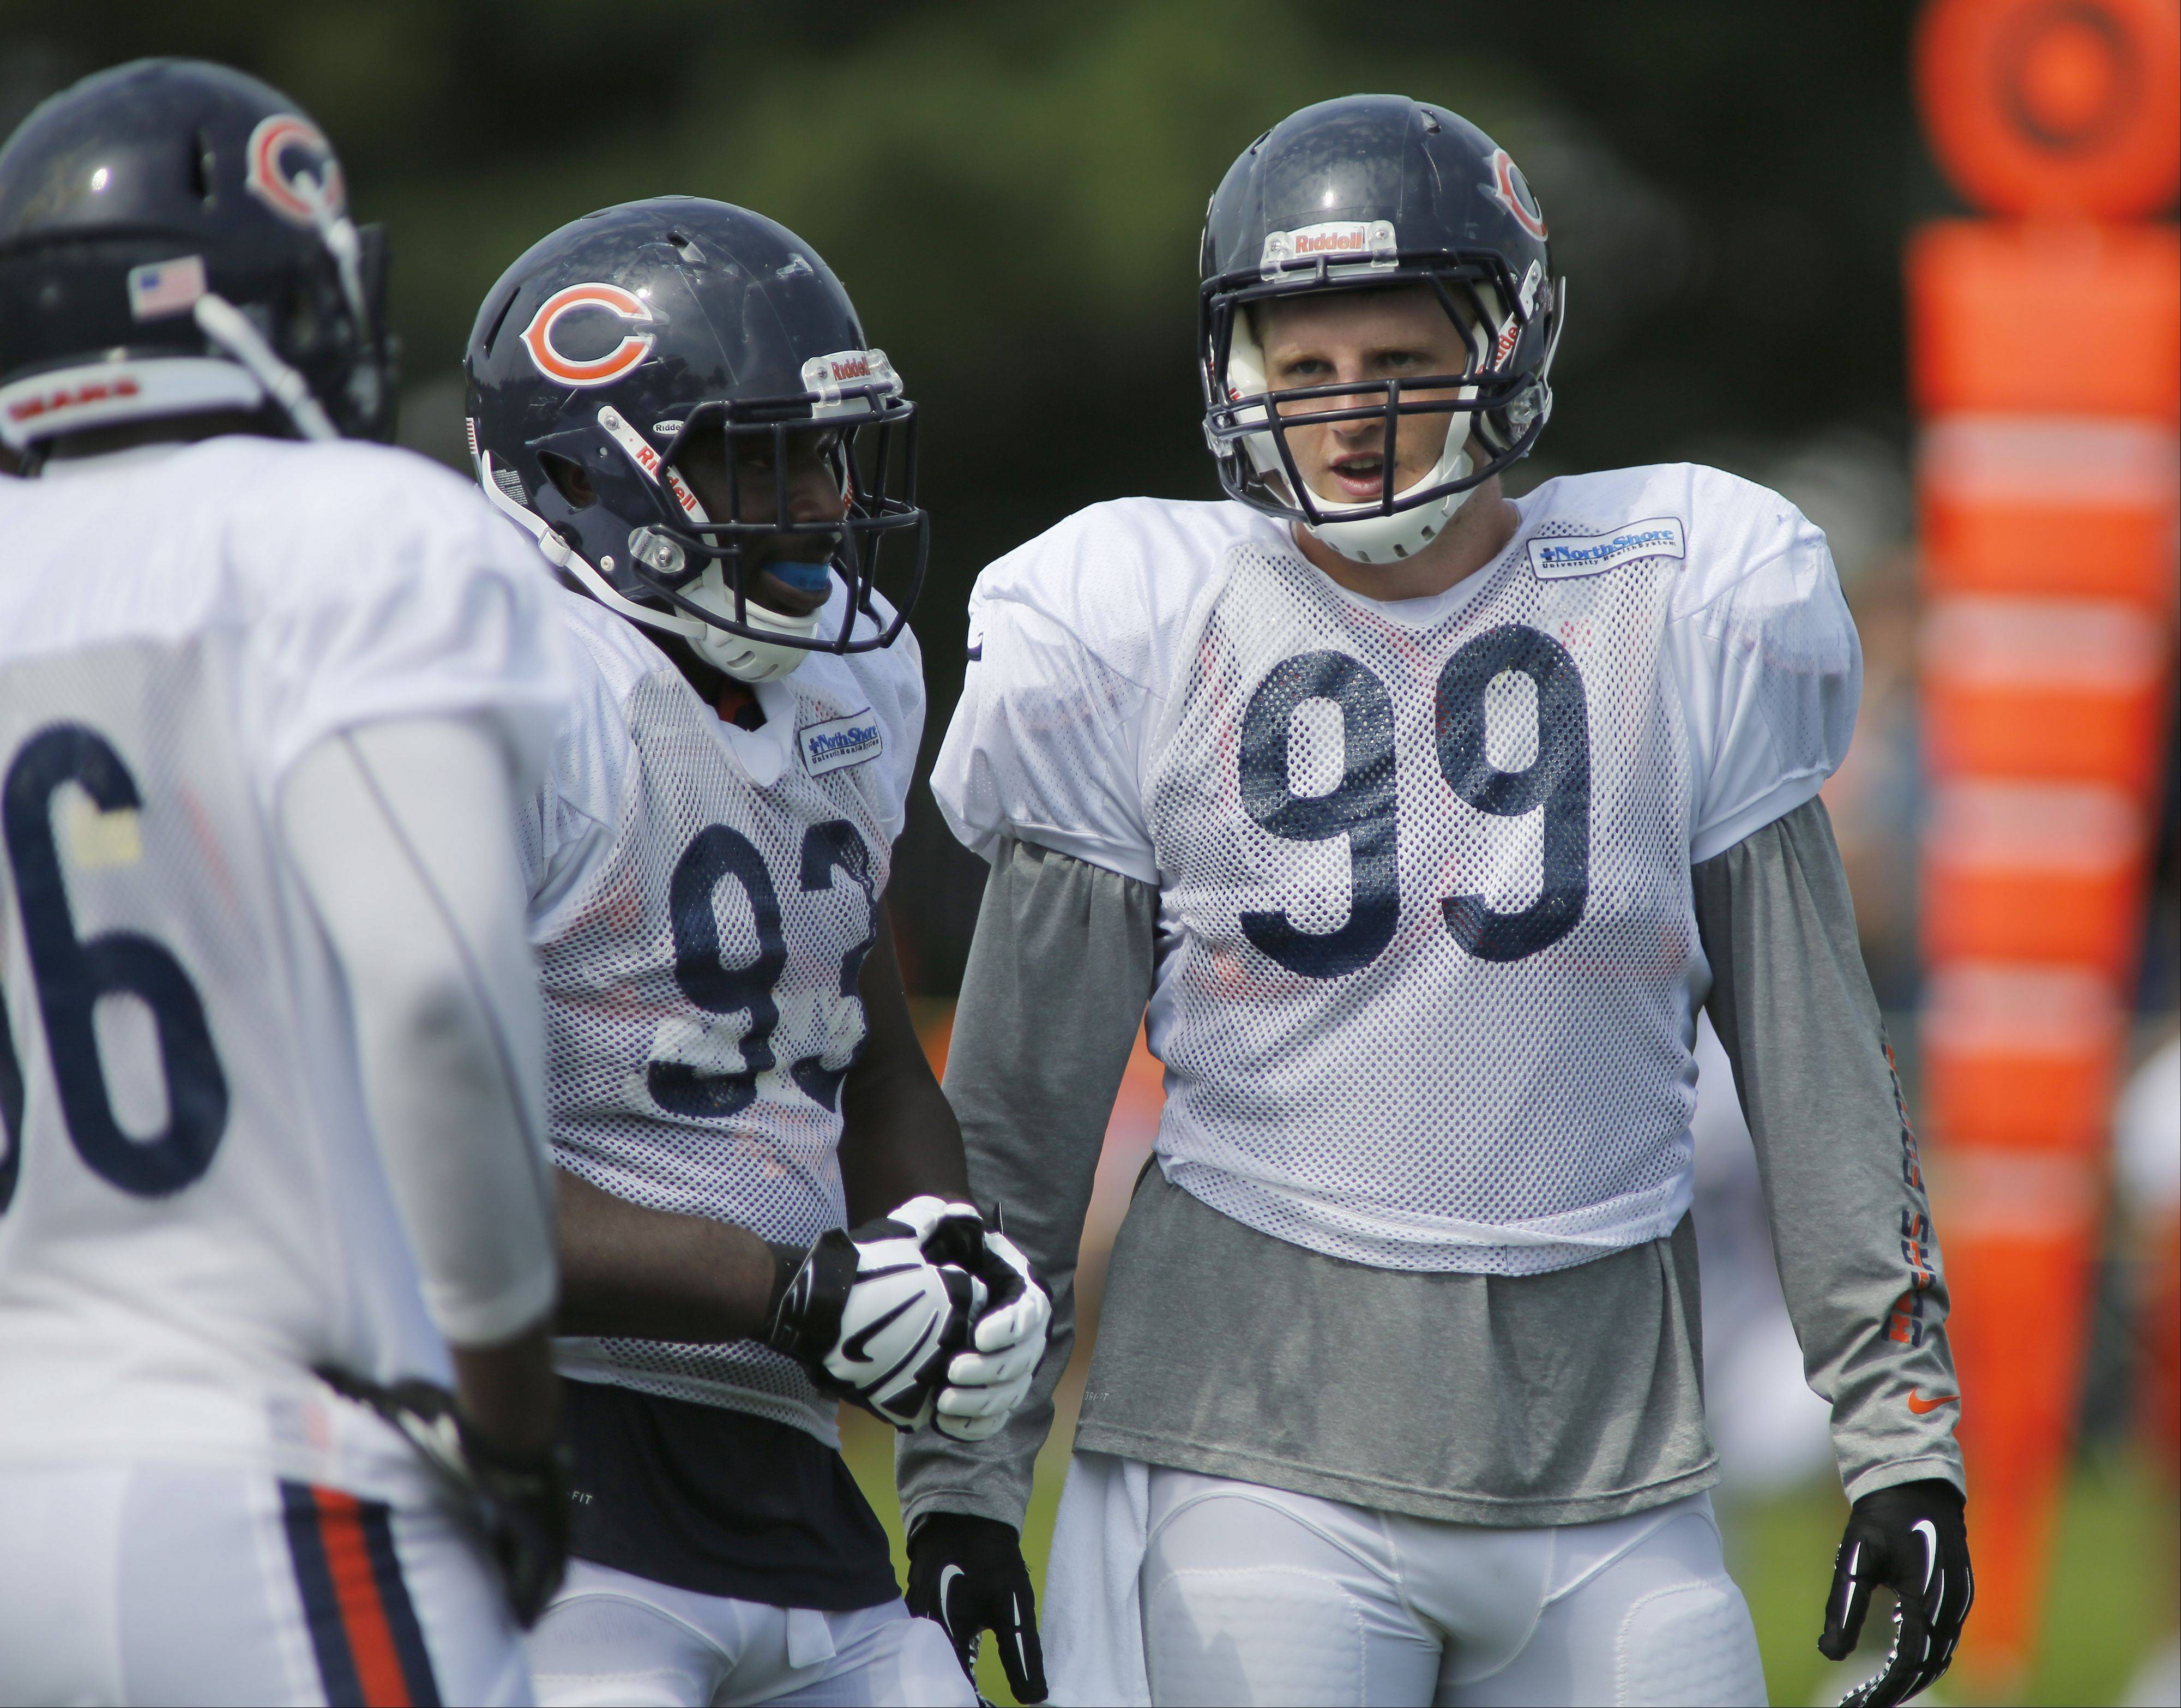 Bears defensive linemen Nate Collins (93) and Shea McClellin (99) are vying for playing time in Bears training camp at Olivet Nazarene University in Bourbonnais. Both should see plenty of action in Thursday's second exhibition game.